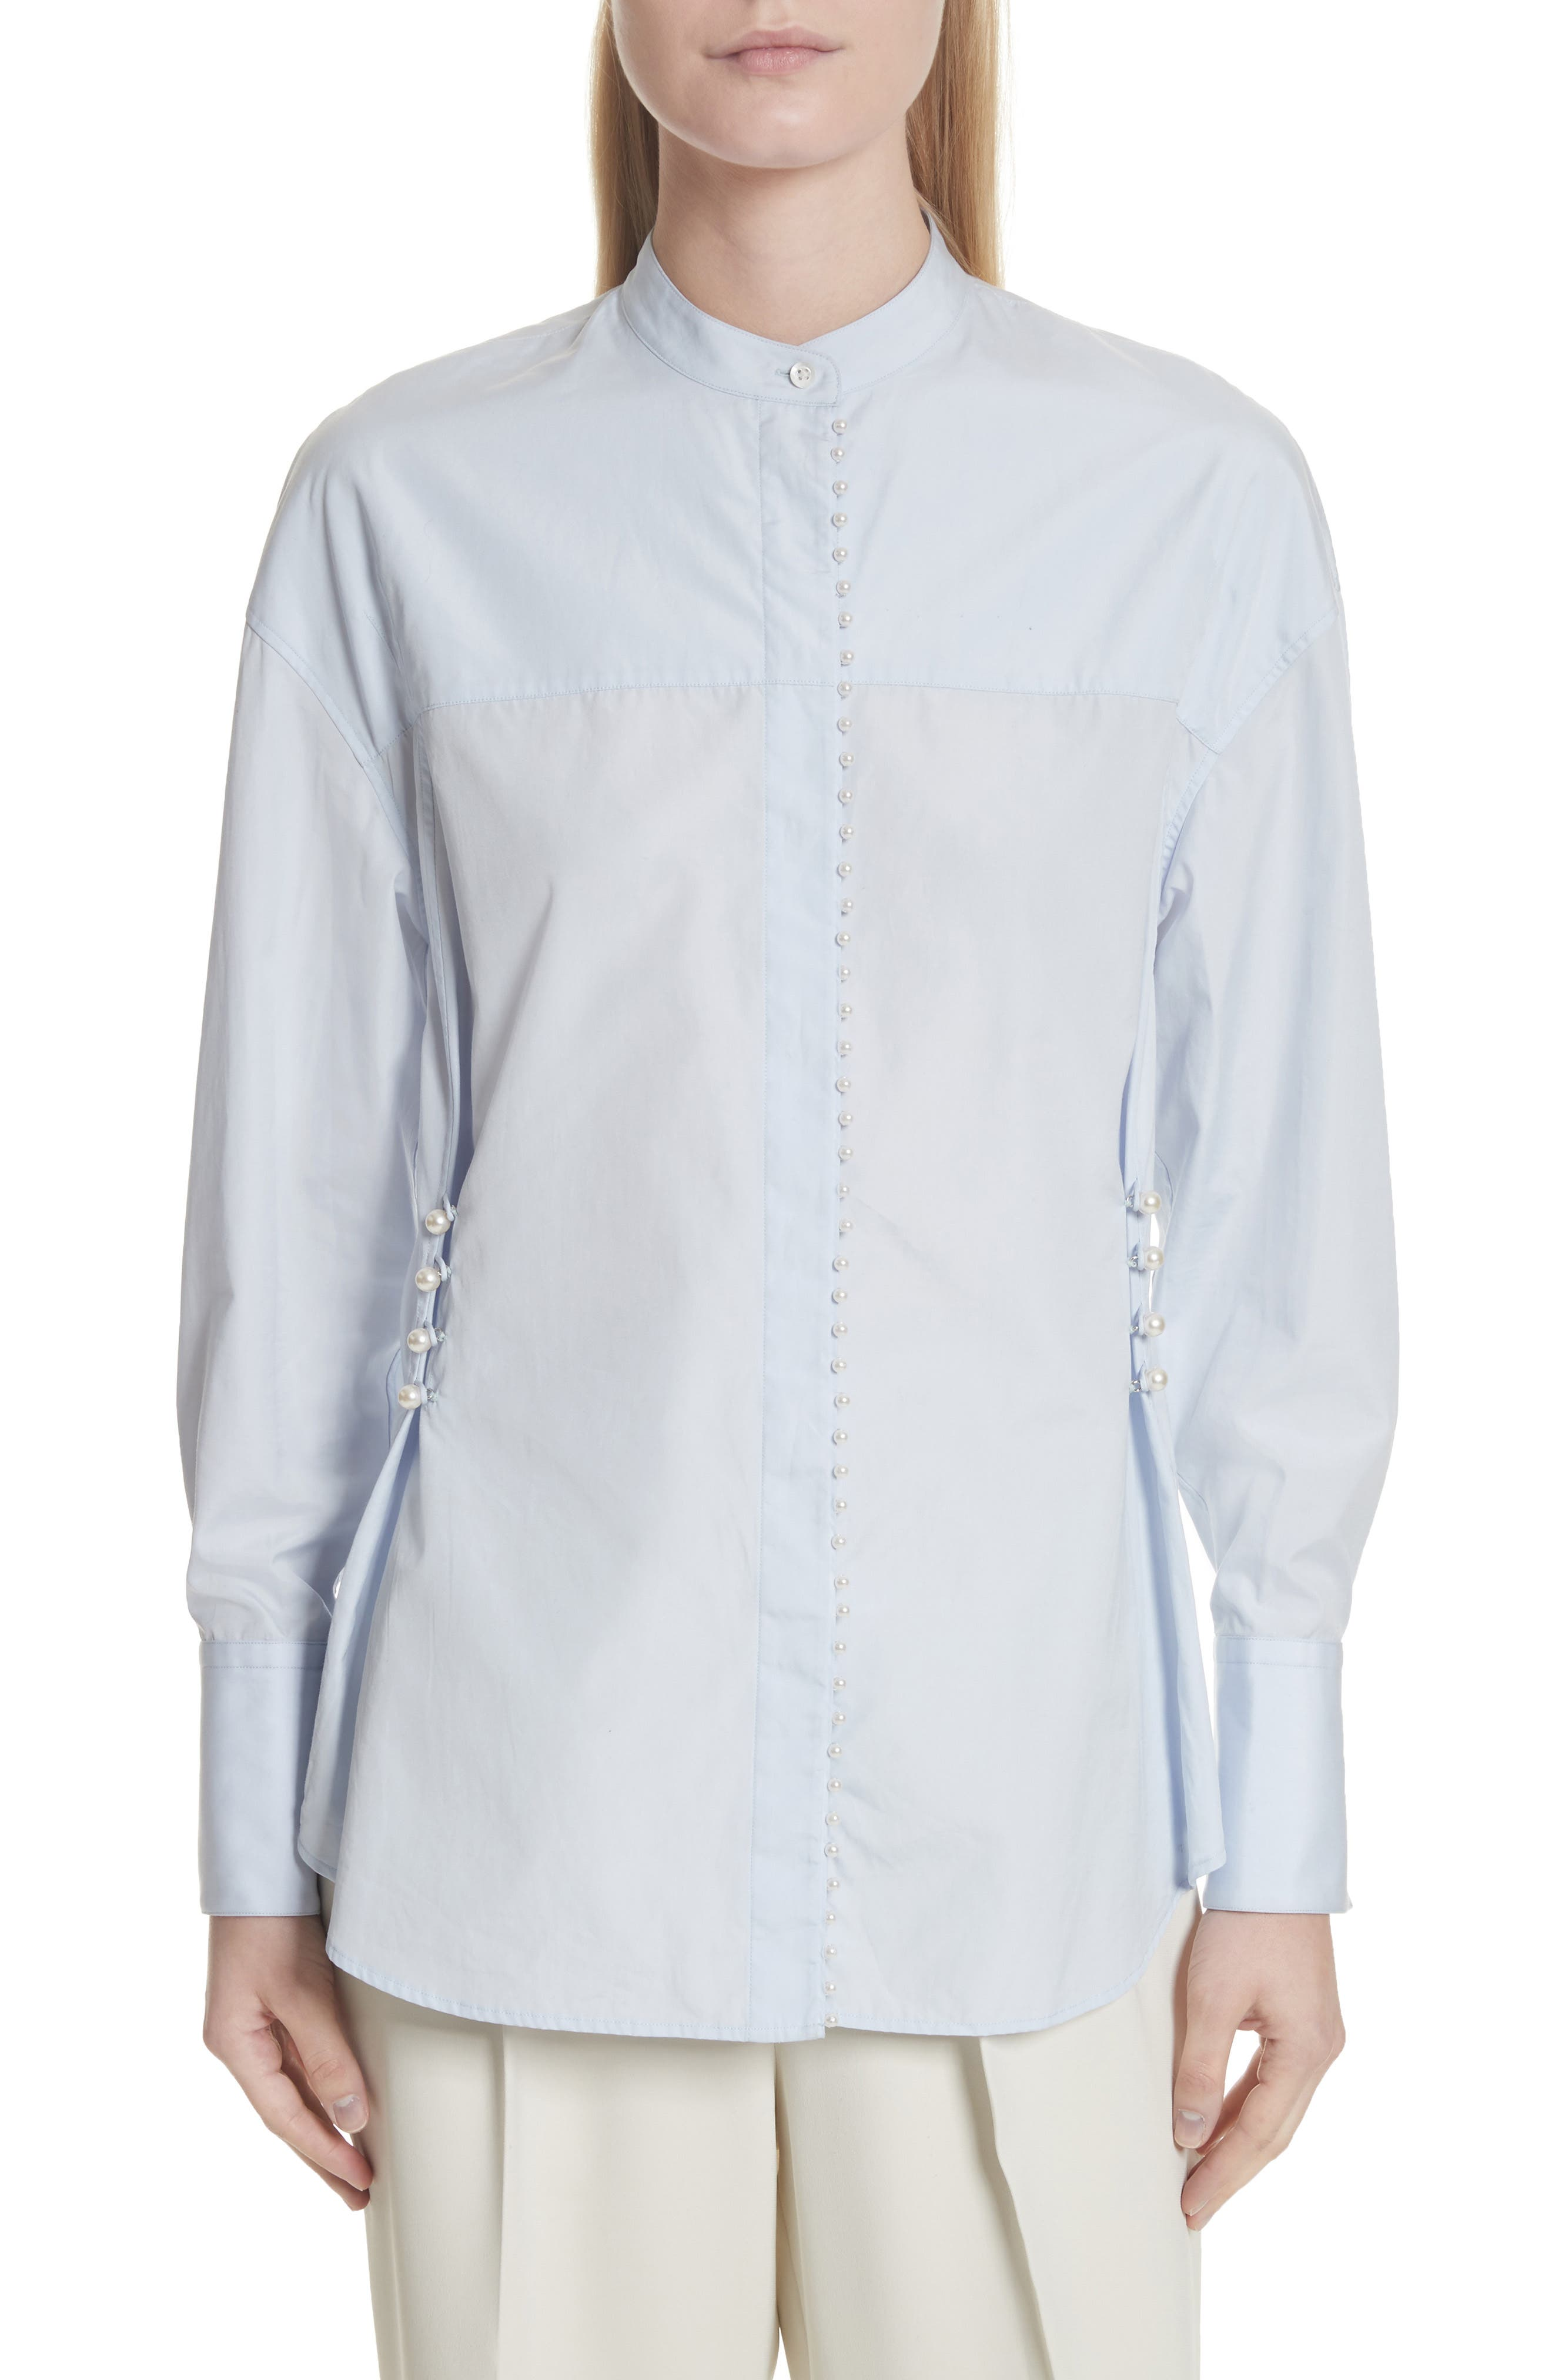 3.1 Phillip Lim Faux Pearl Button Cotton Blouse